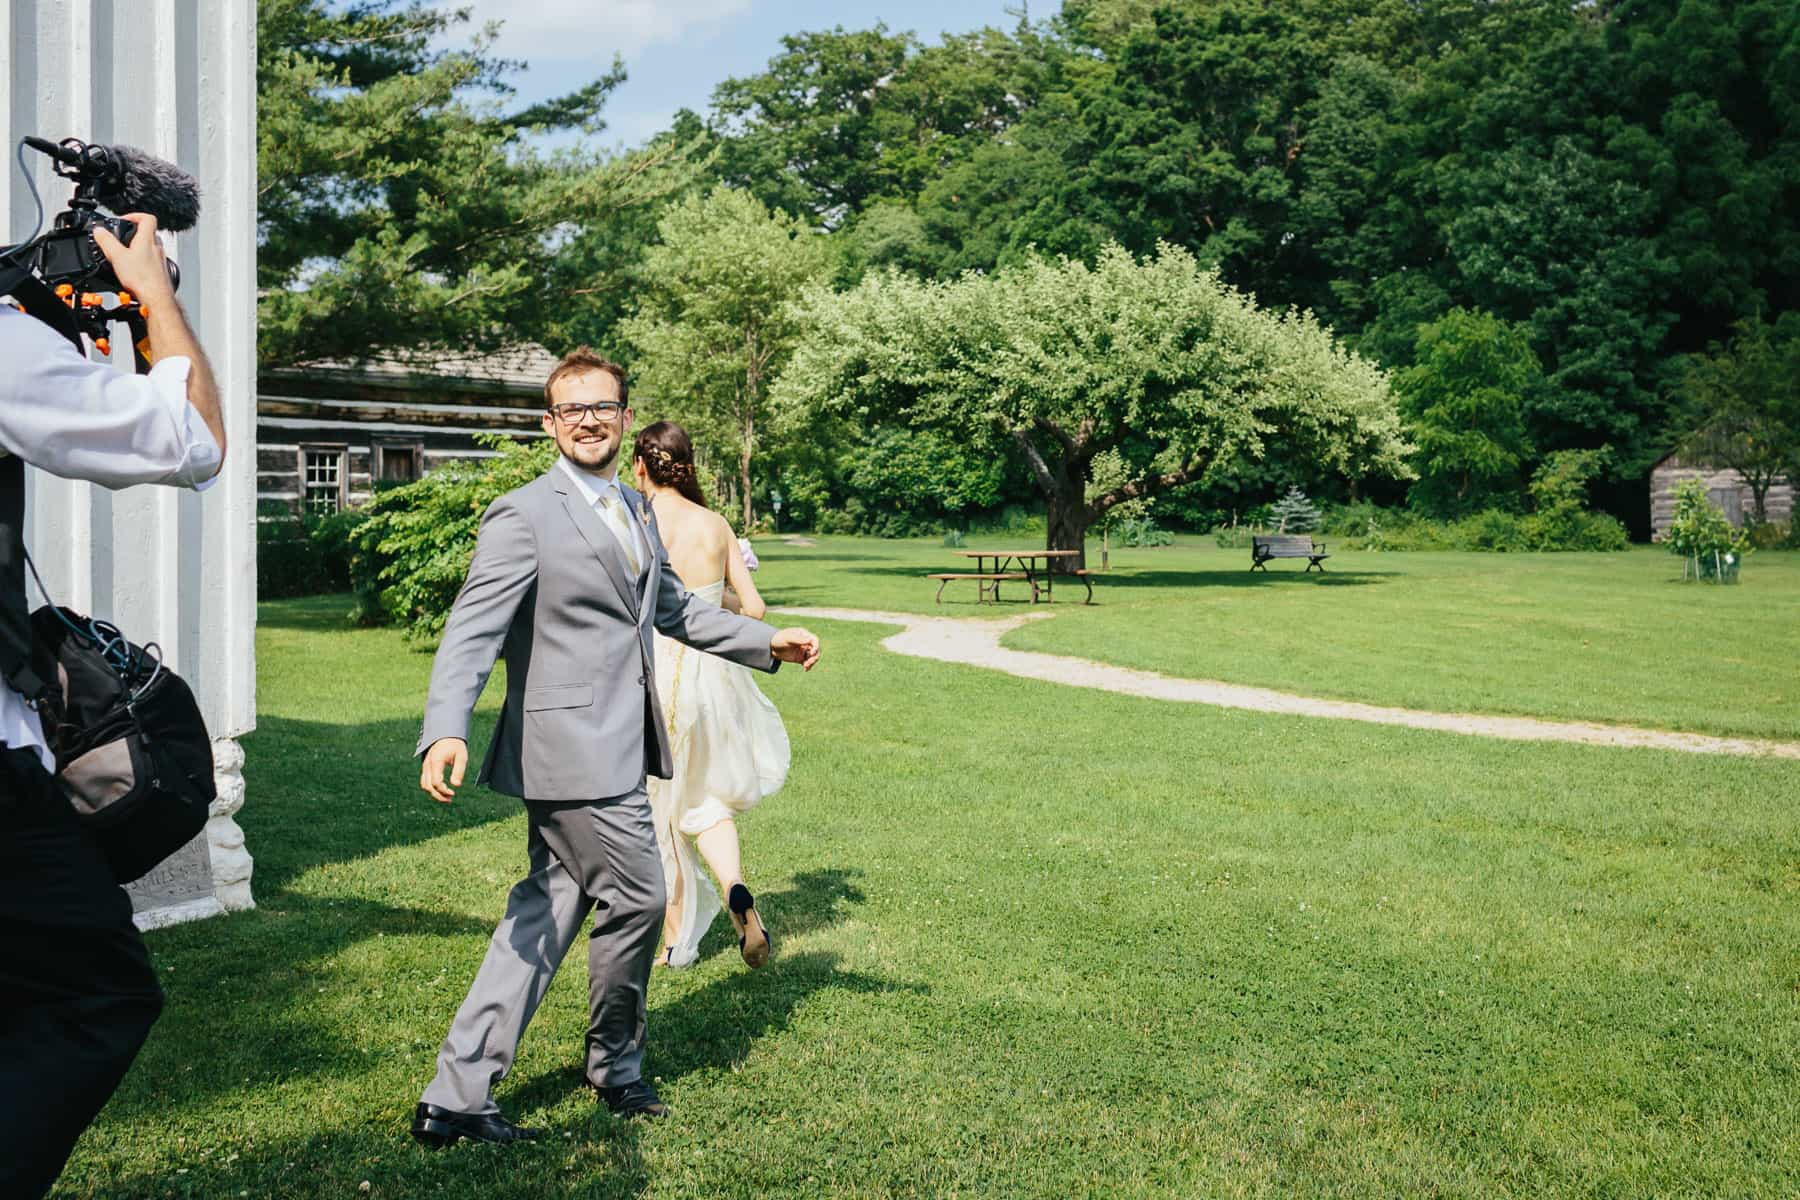 Bride and groom walking away from the videographer right after the ceremony at this rustic Ball's Falls wedding.